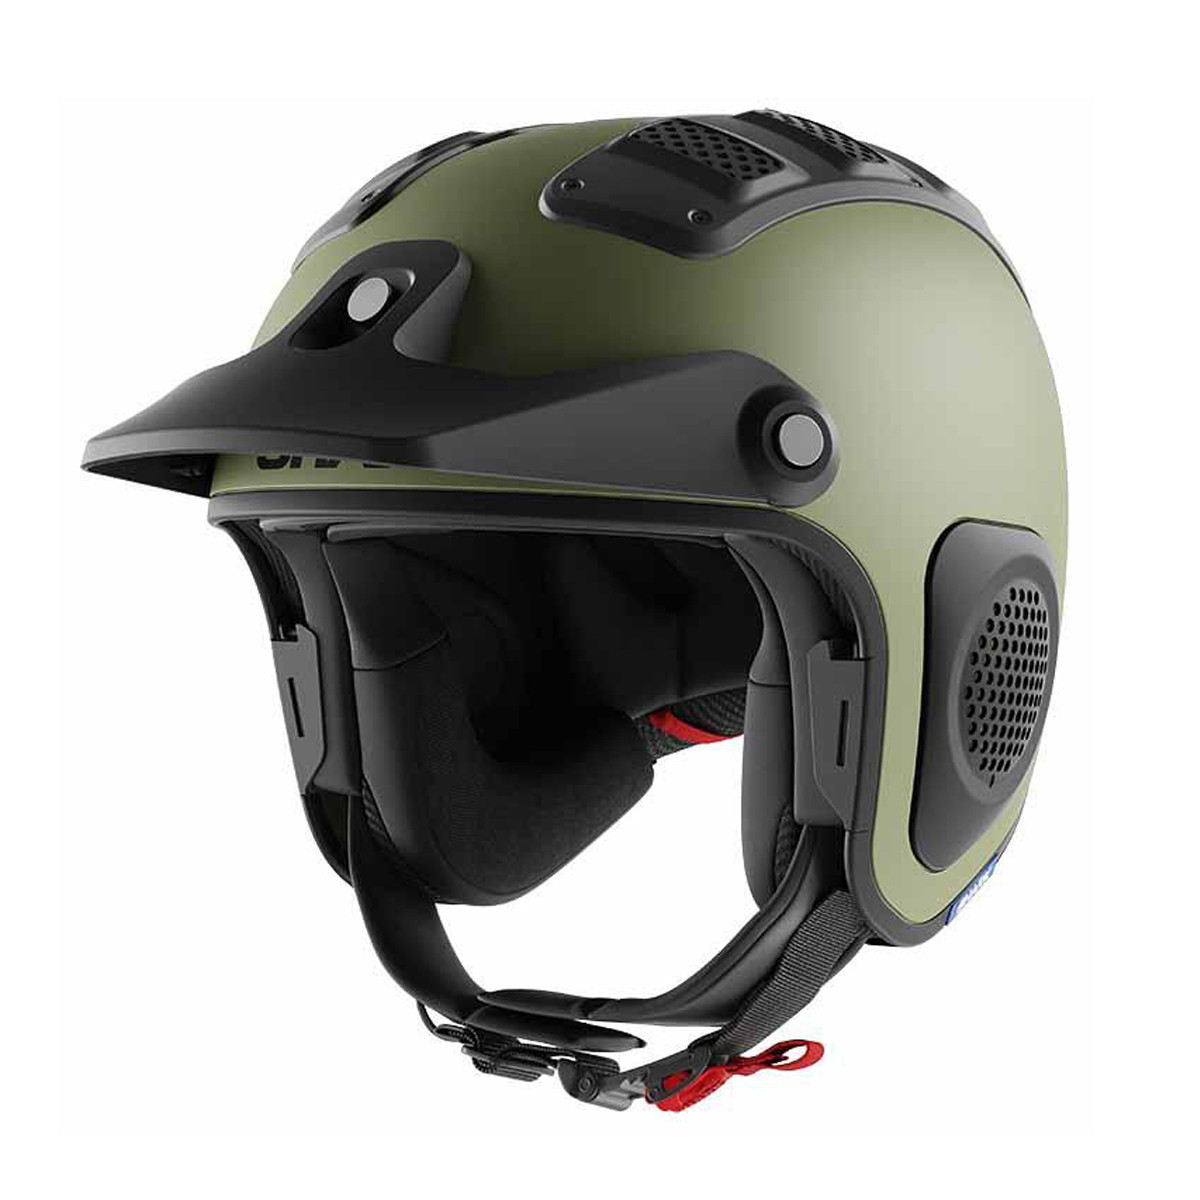 Casco Abierto Shark Drak Atv Verde Mate